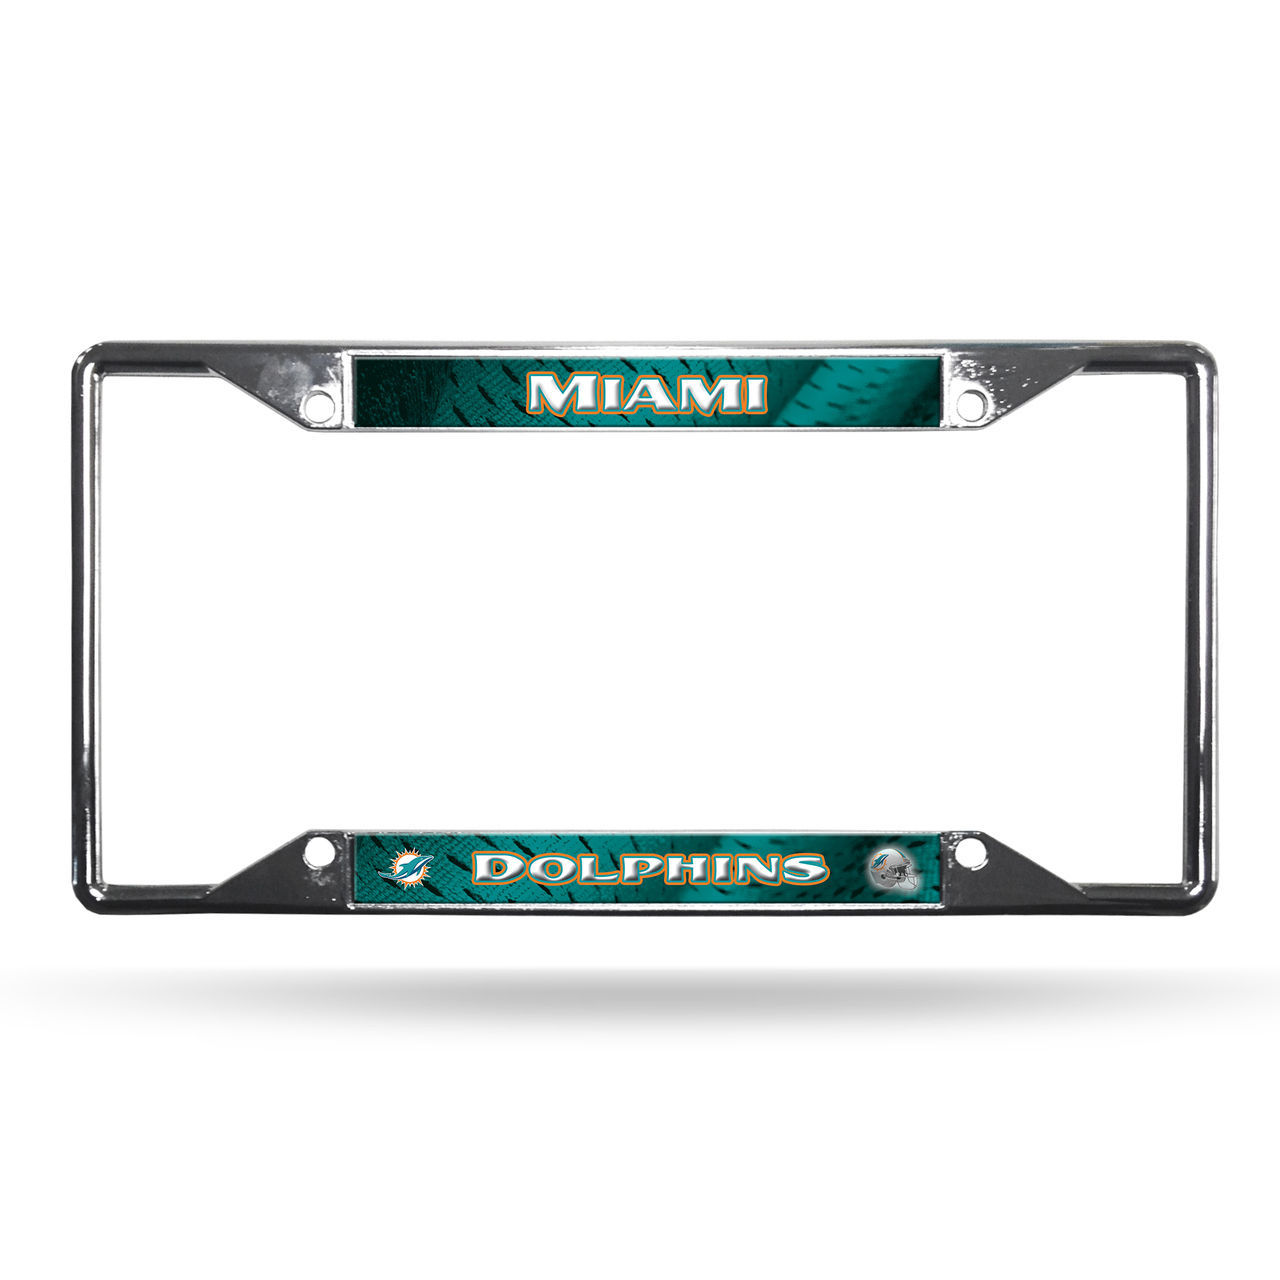 MIAMI DOLPHINS CAR AUTO CHROME METAL EZ View LICENSE PLATE FRAME NFL FOOTBALL